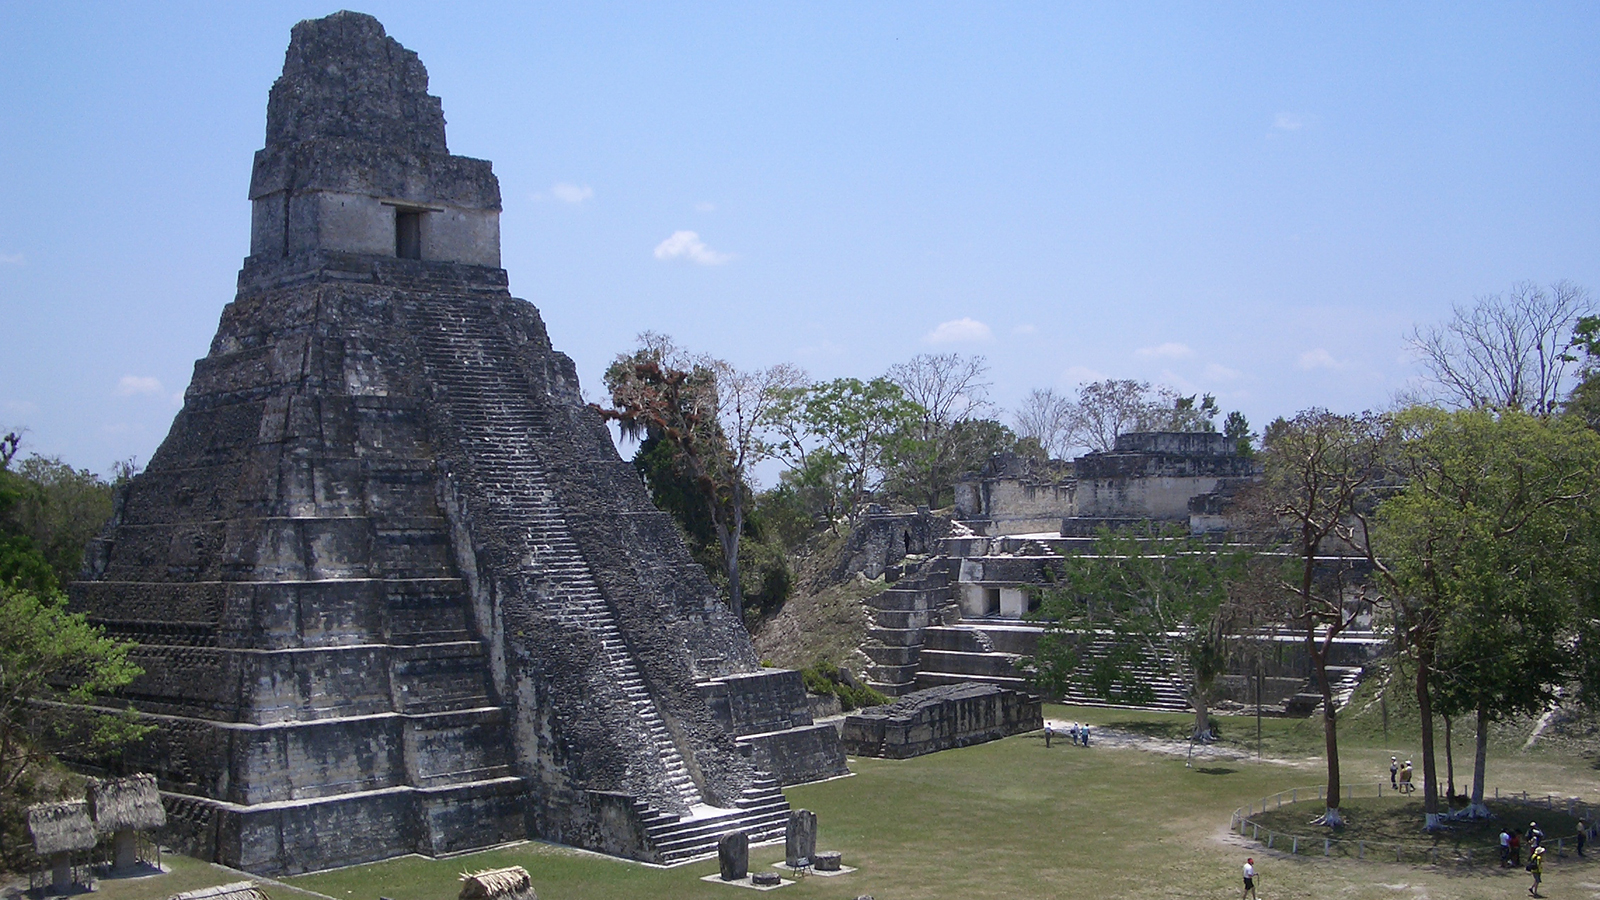 Management of the world heritage sites of Maya Civilization: North Acropolis project at Tikal